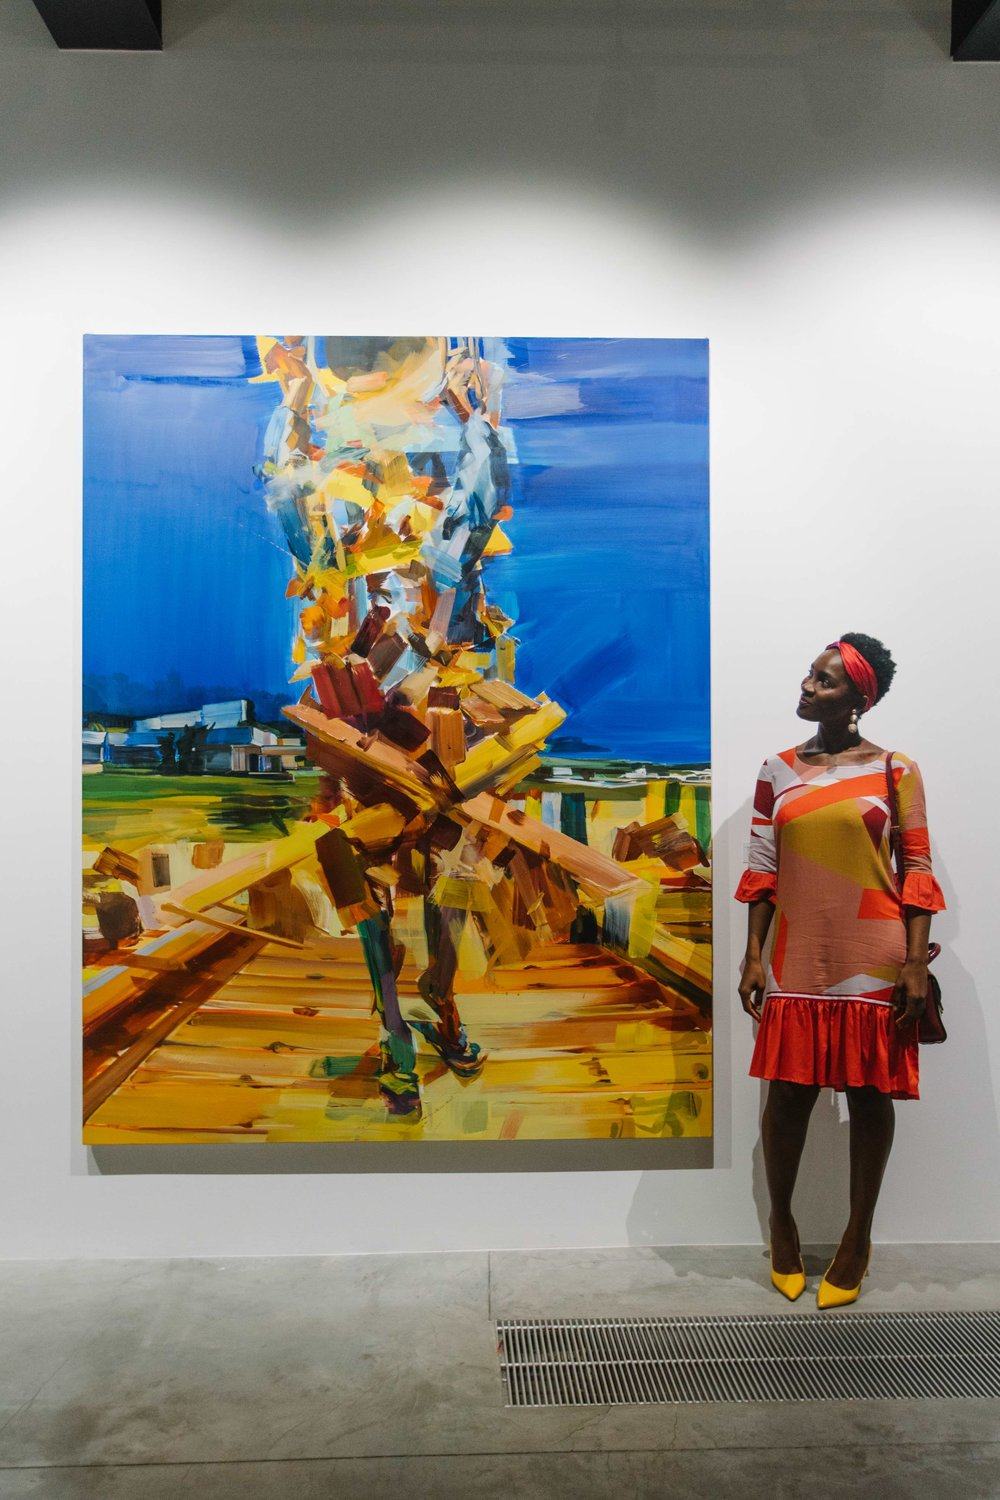 AAbout the World , Barthélémy Toguo - Duncan Wylie, Hangar Arts Centre, Brussels, Sept/Oct 2018, curator Philip Piguet